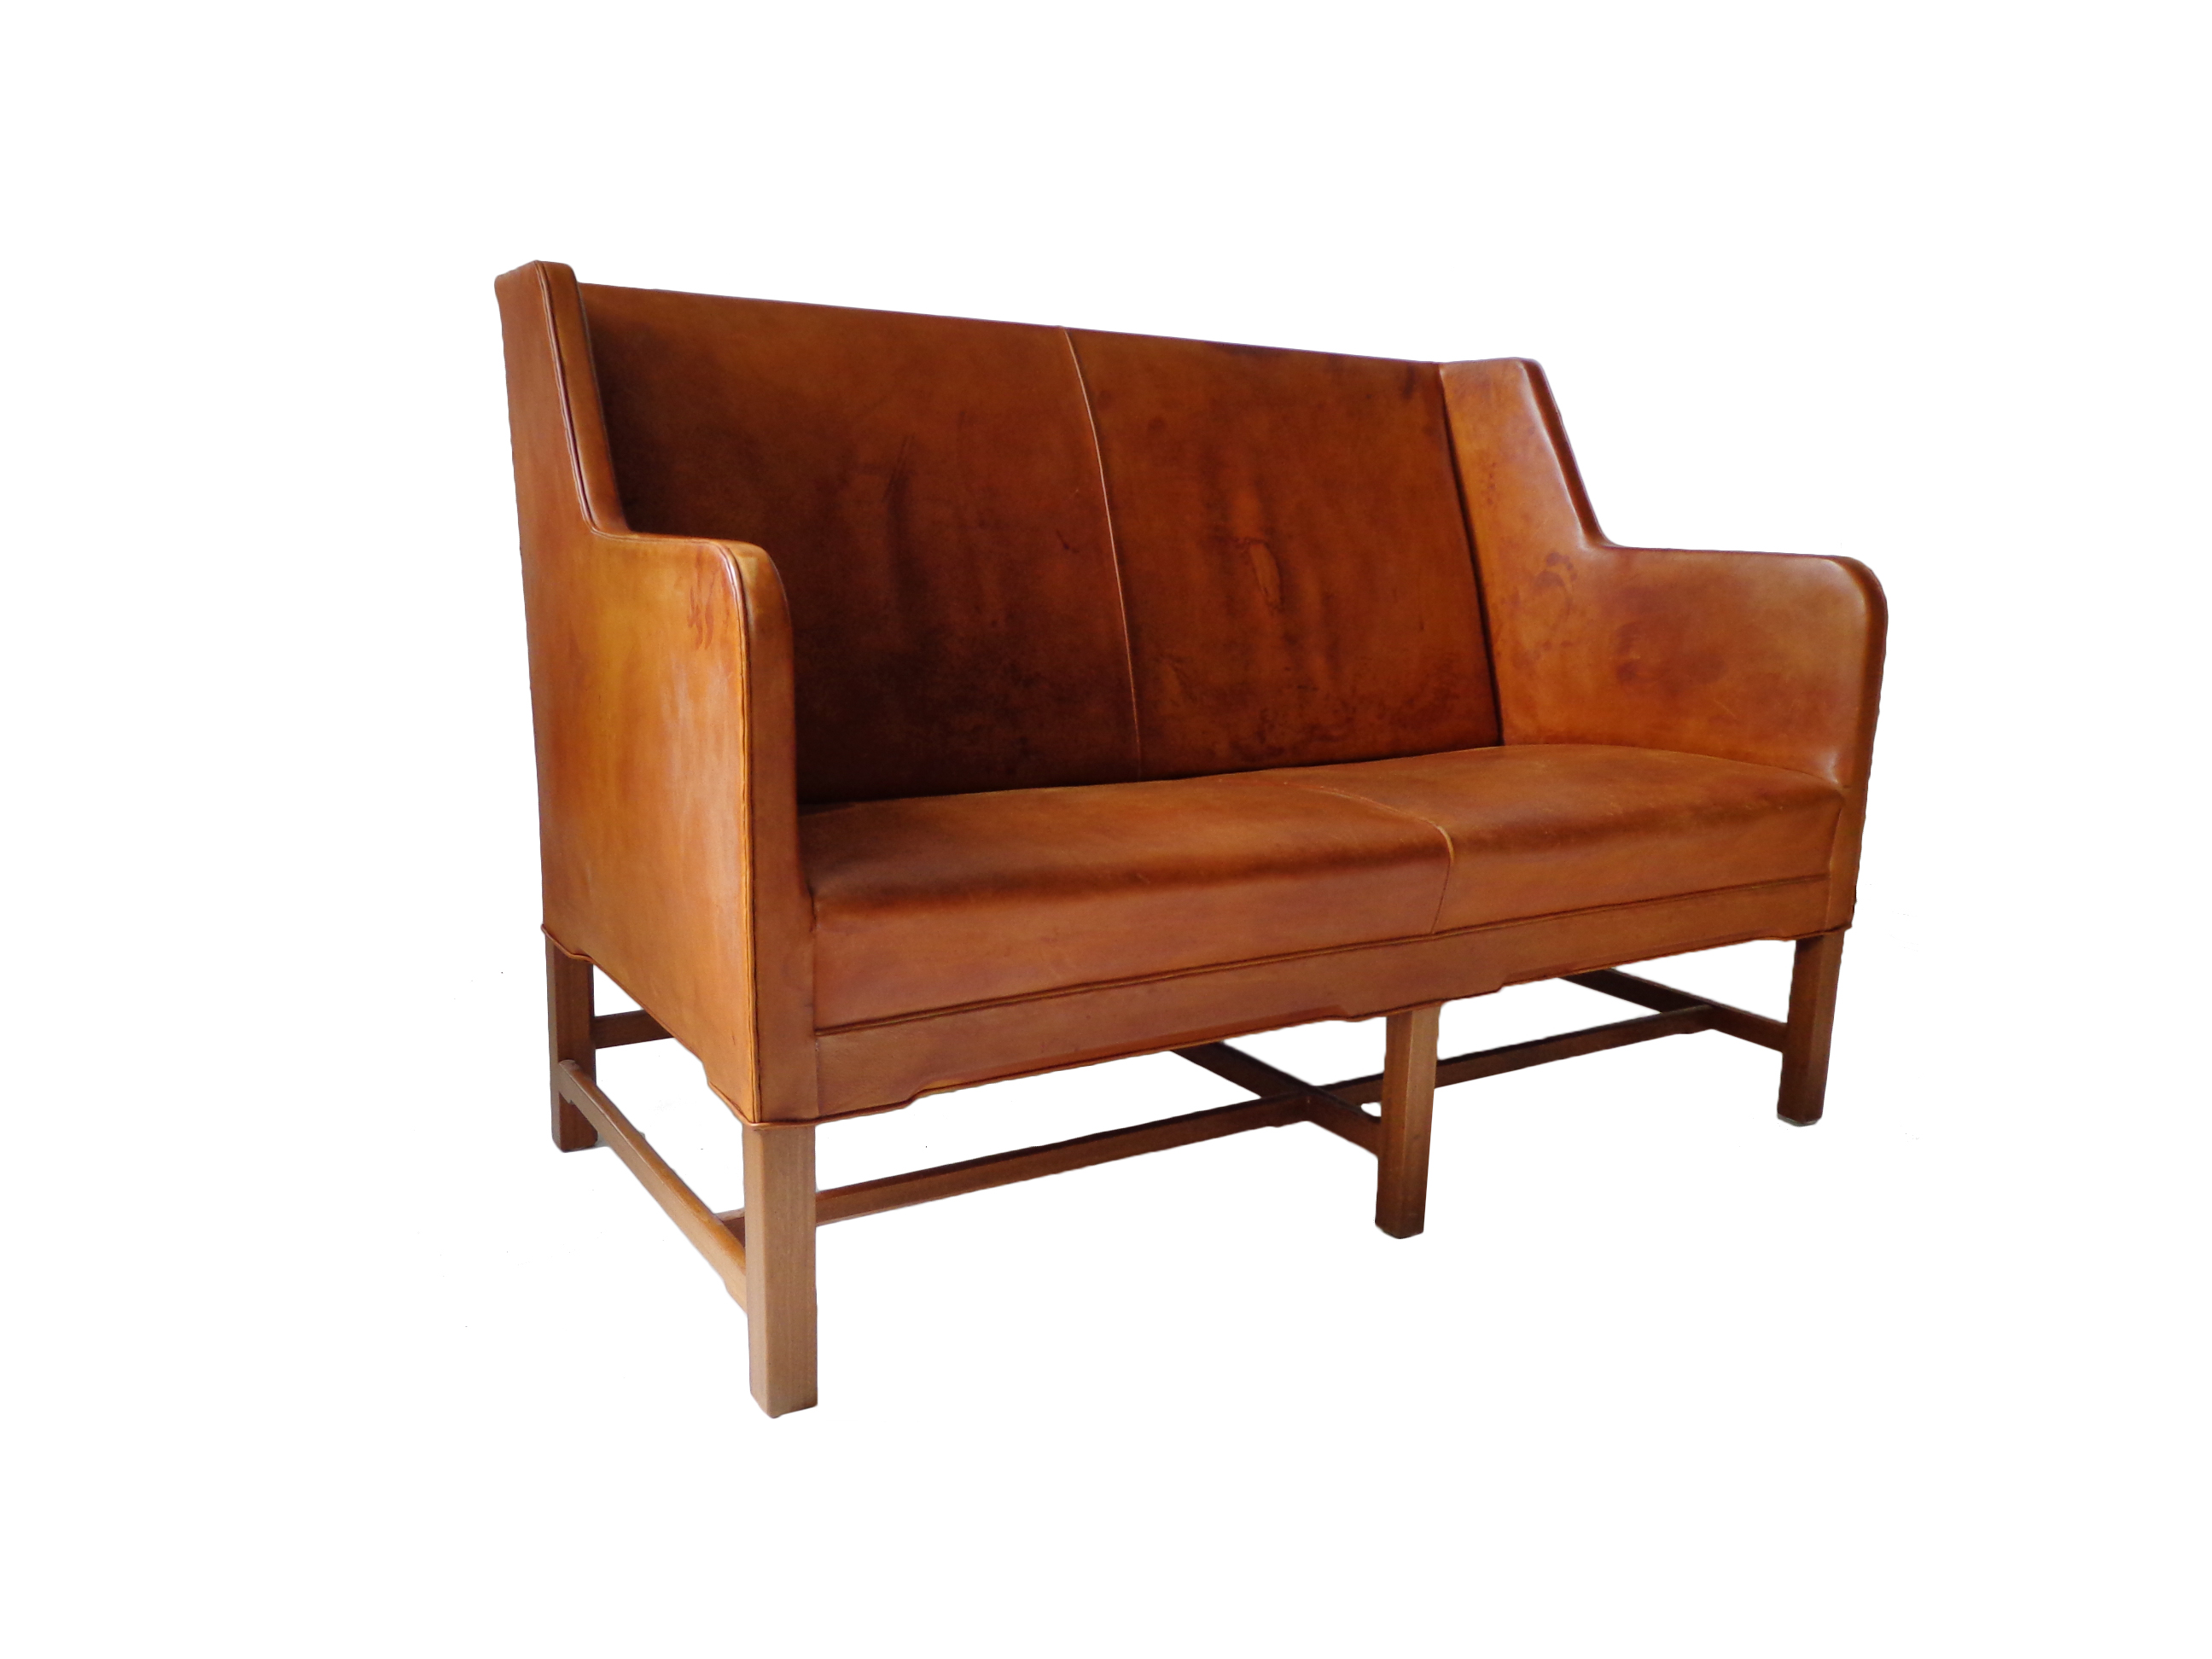 Kaare Klint two-seater sofa